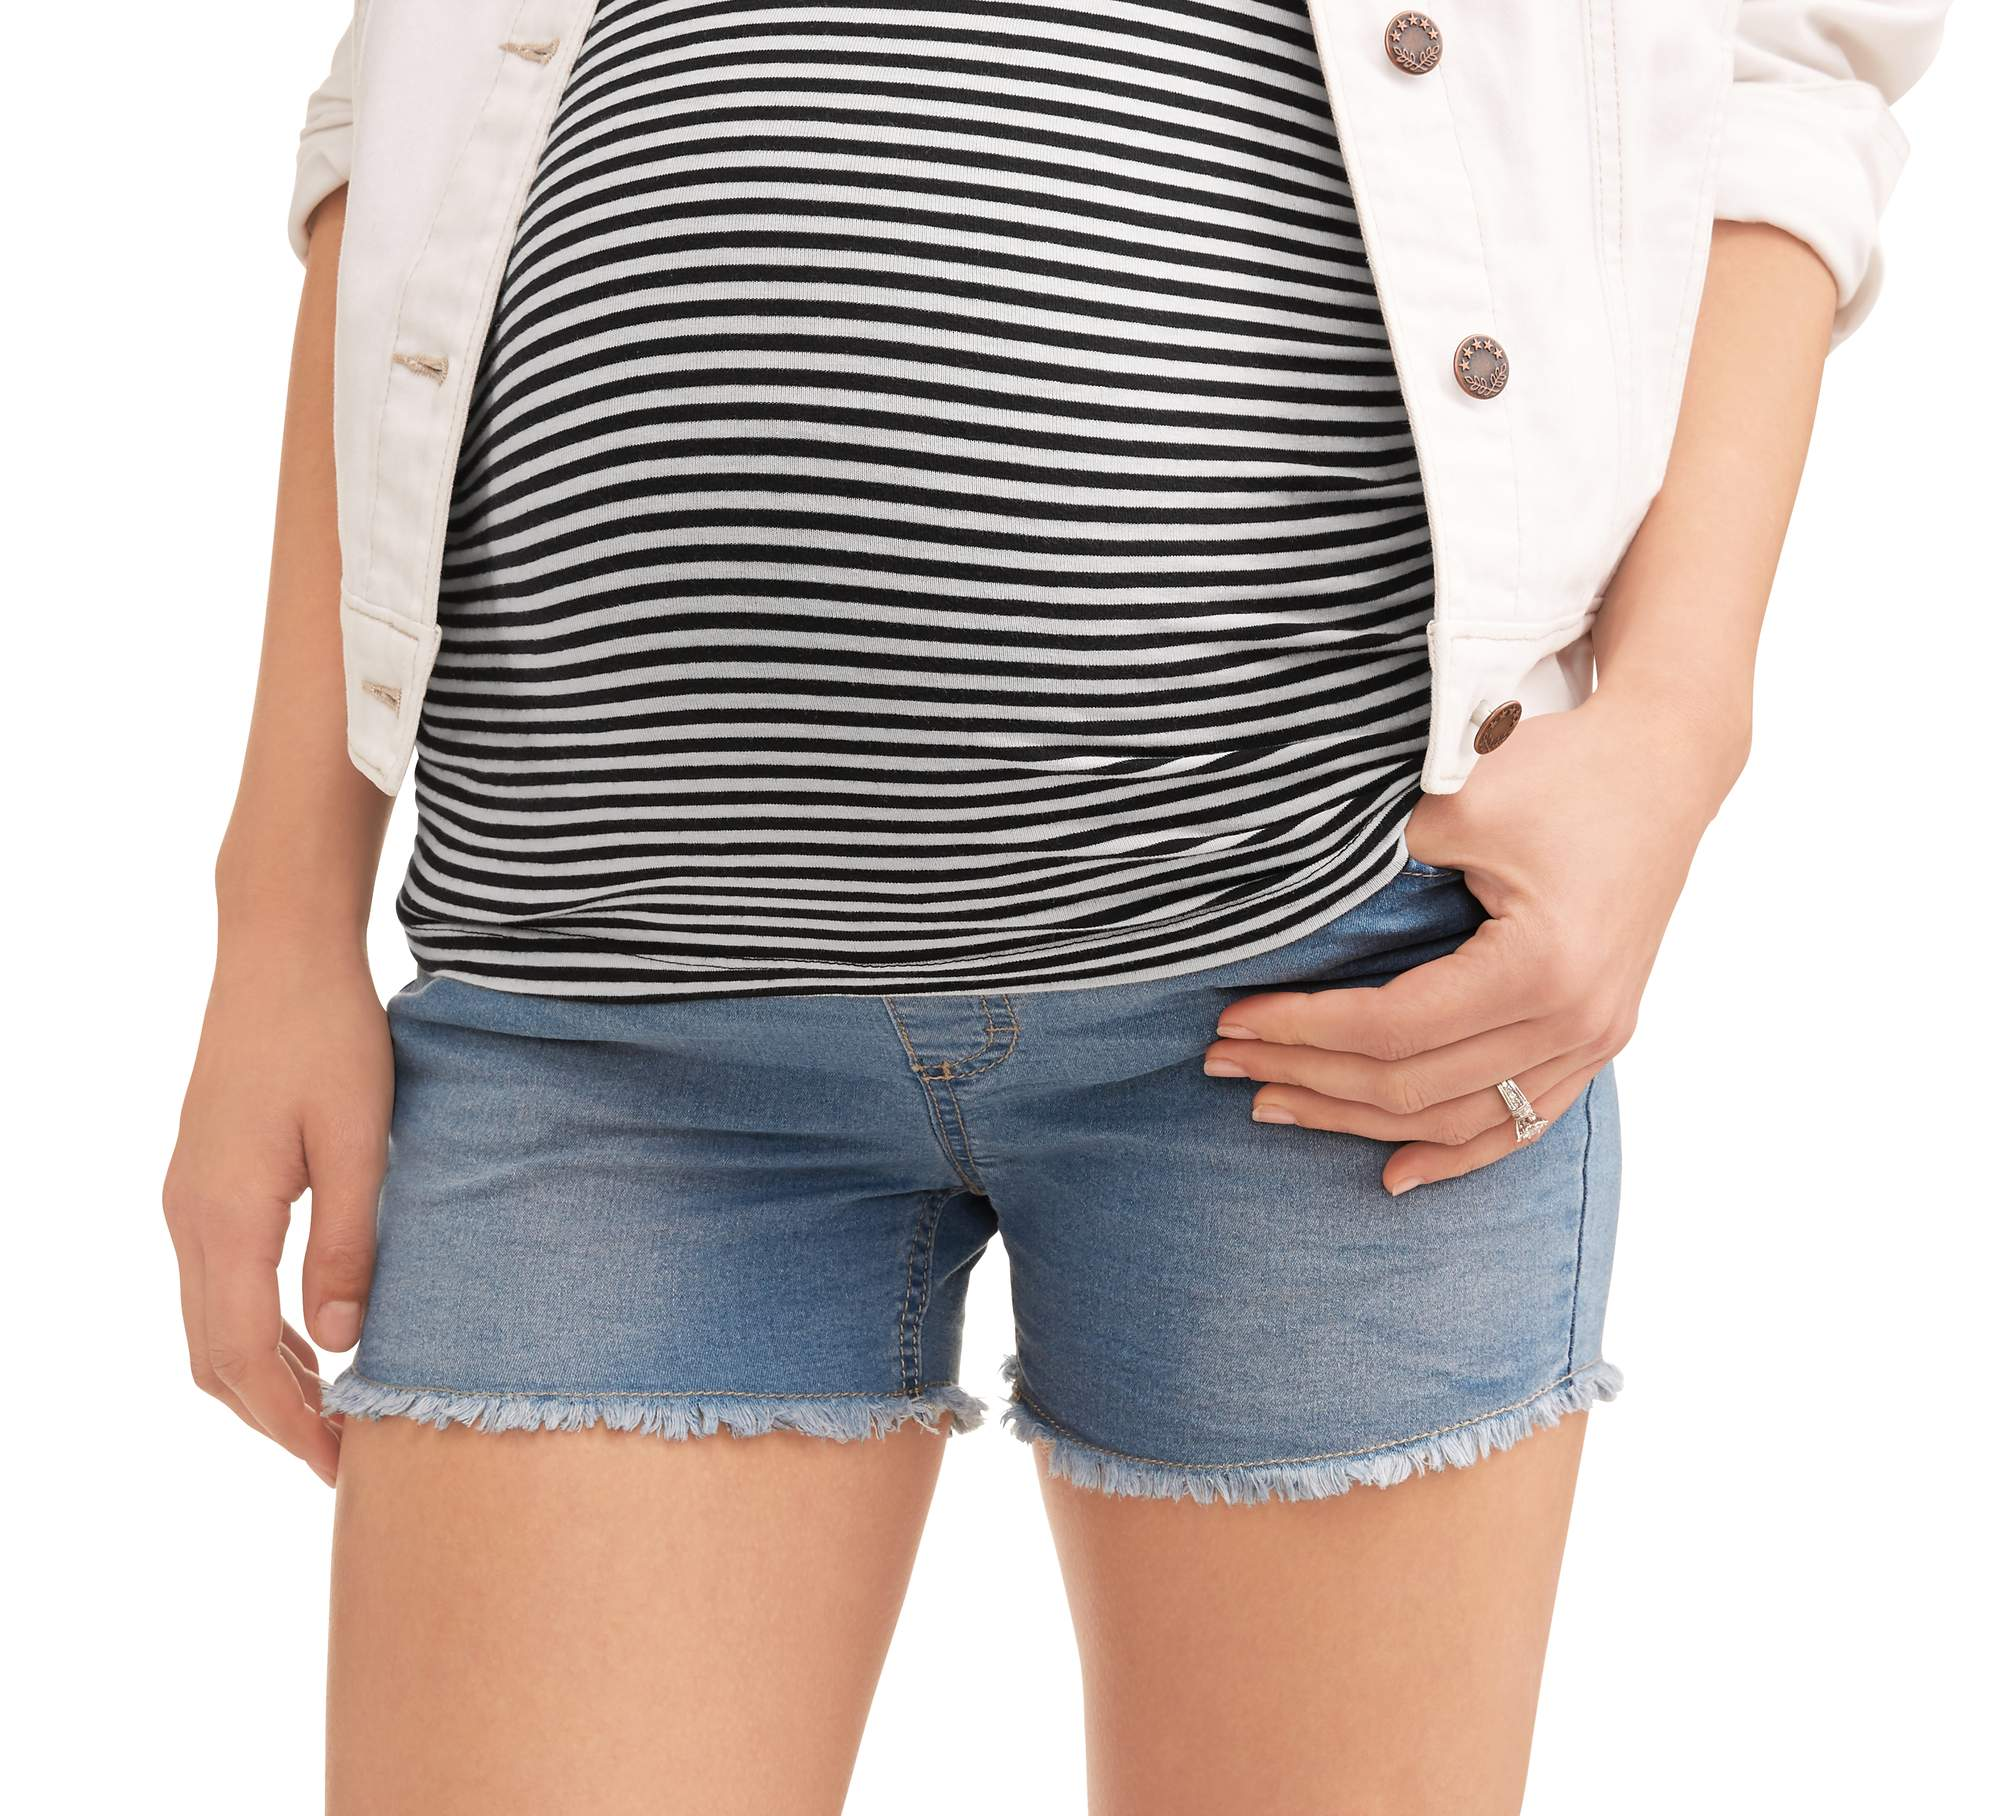 Oh Mamma Maternity Full Panel Super Soft 5 Pocket Shorts With Fringe Cuff by